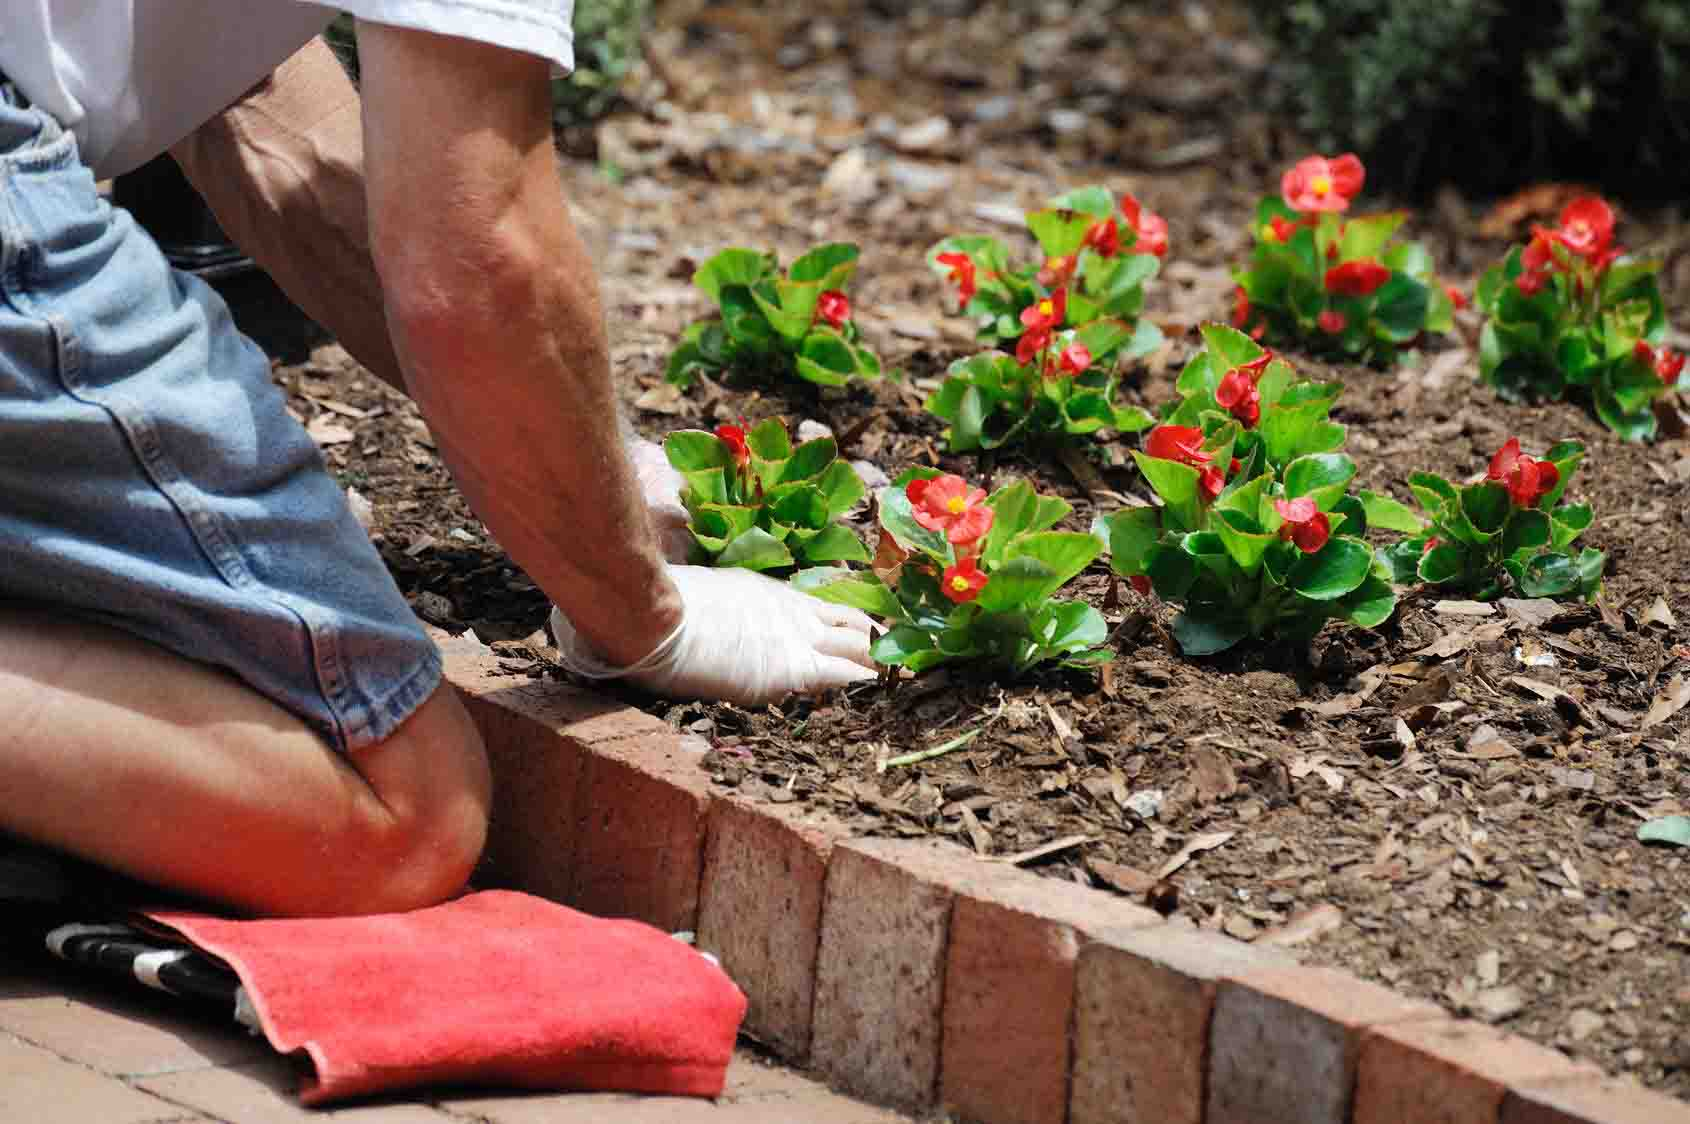 Easy To Follow Garden Tips For Beginners